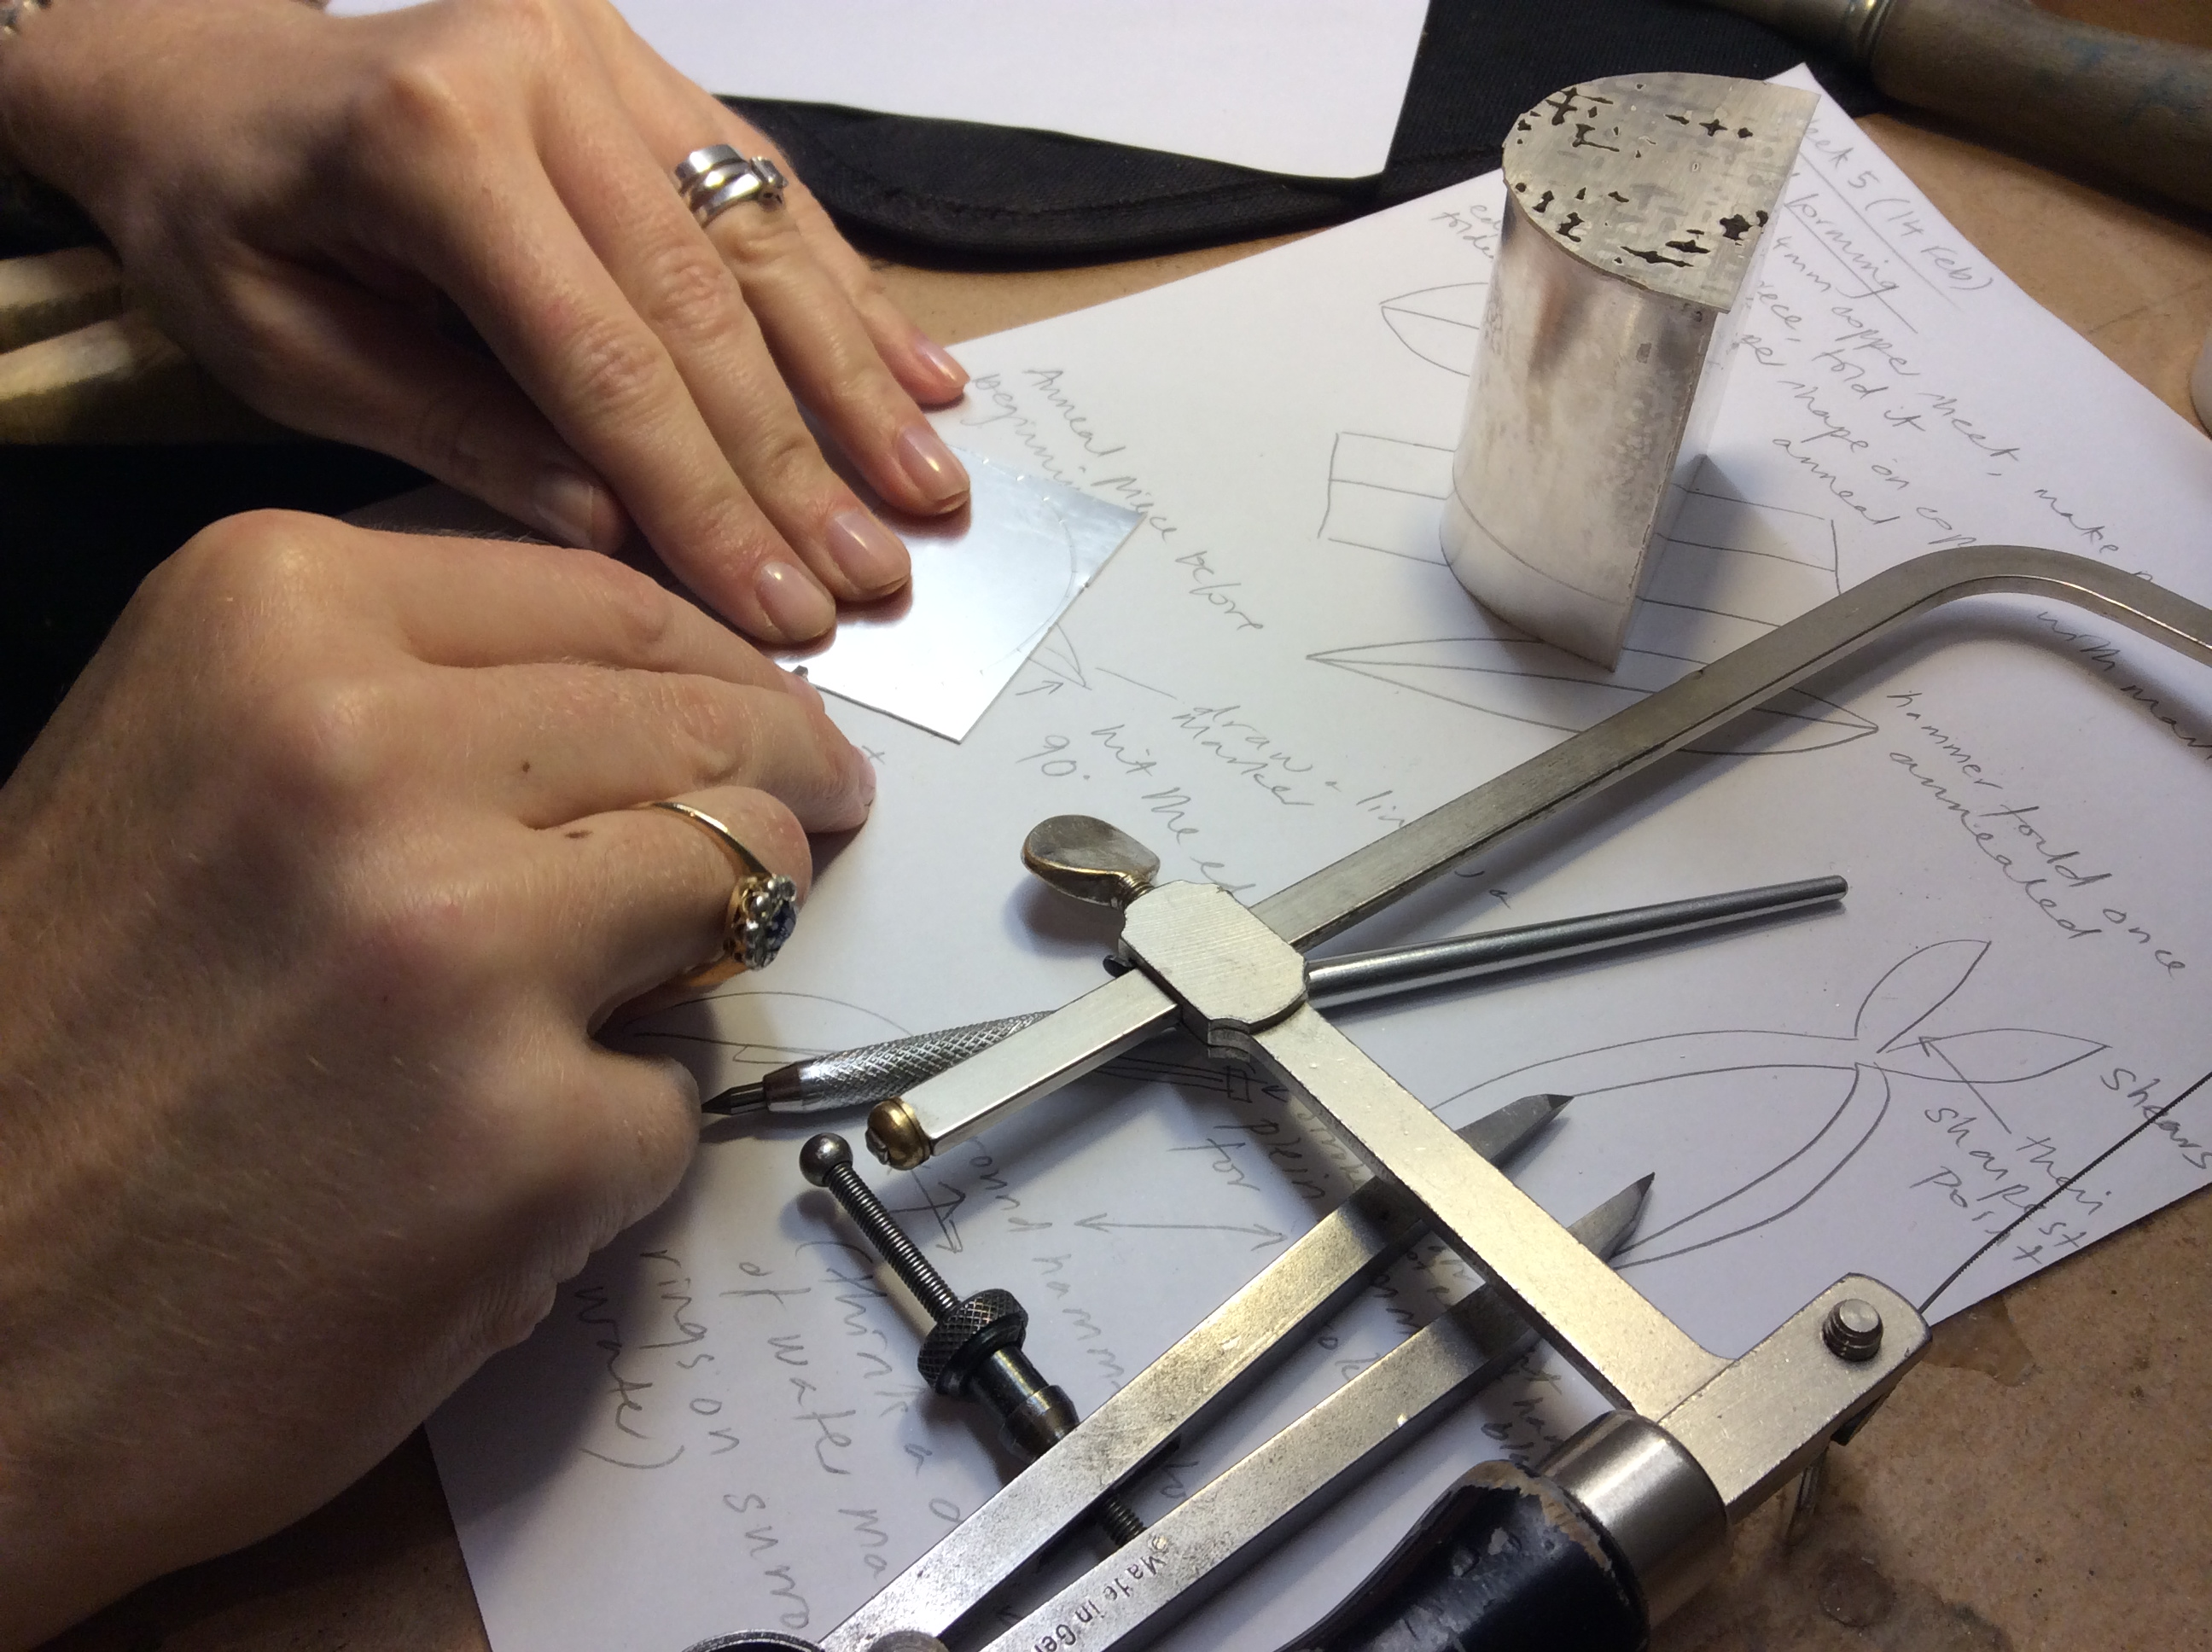 Beginners Jewellery Evening Course - 5 weeks by VS Jewellery School - crafts in London